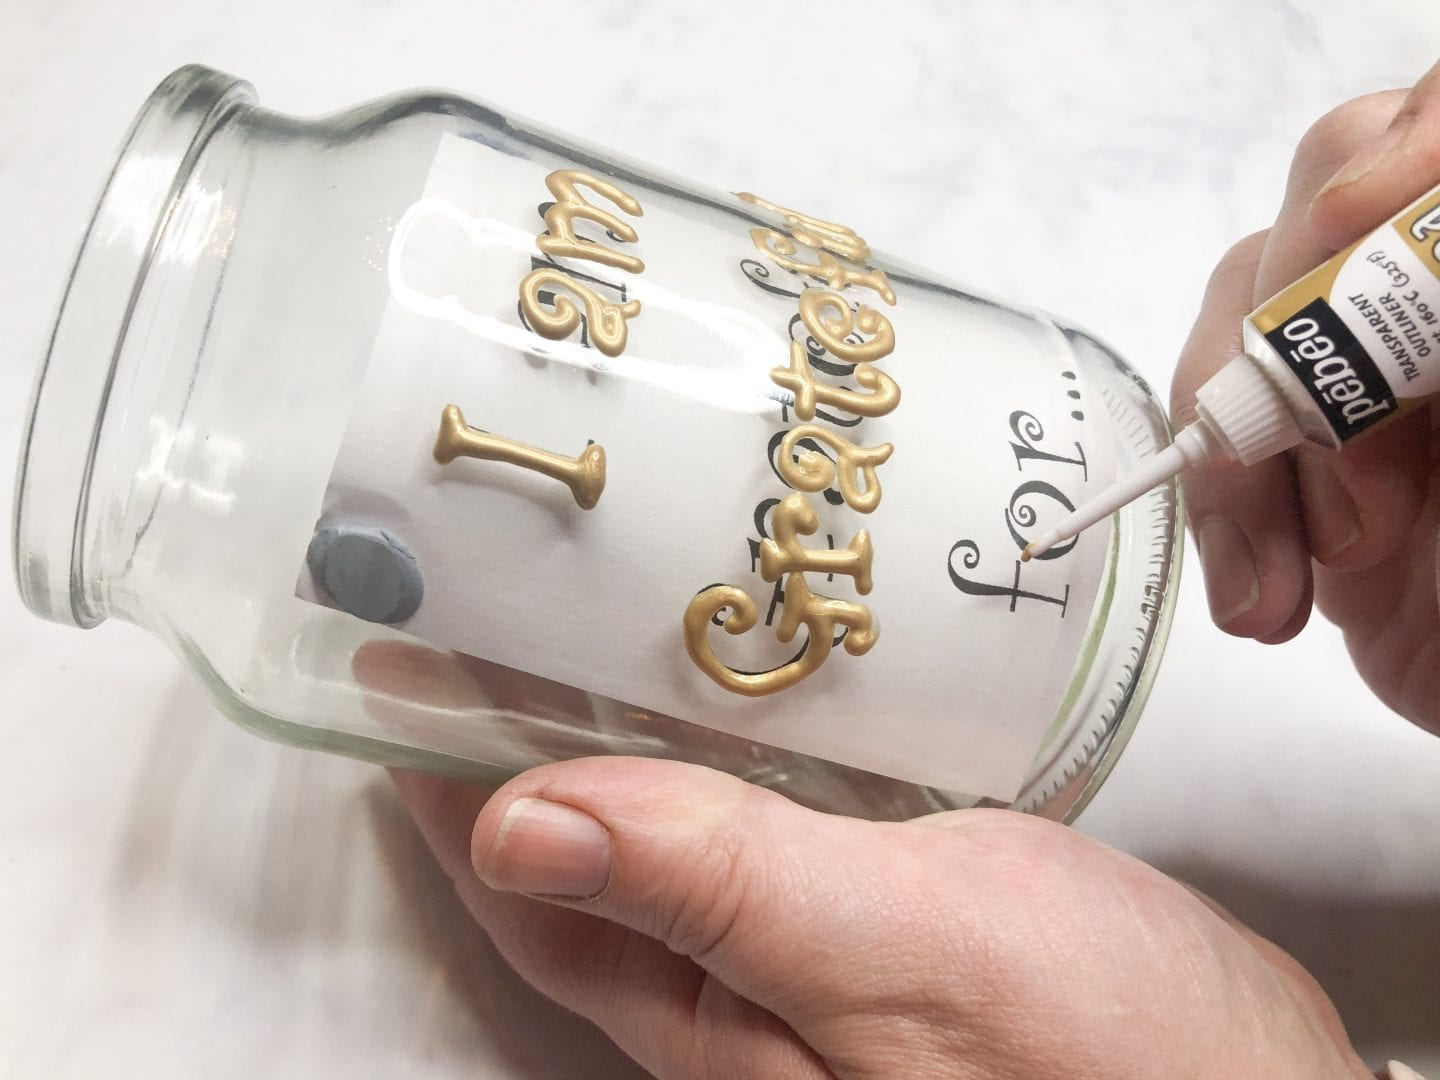 Writing on the galss jar with relief paste